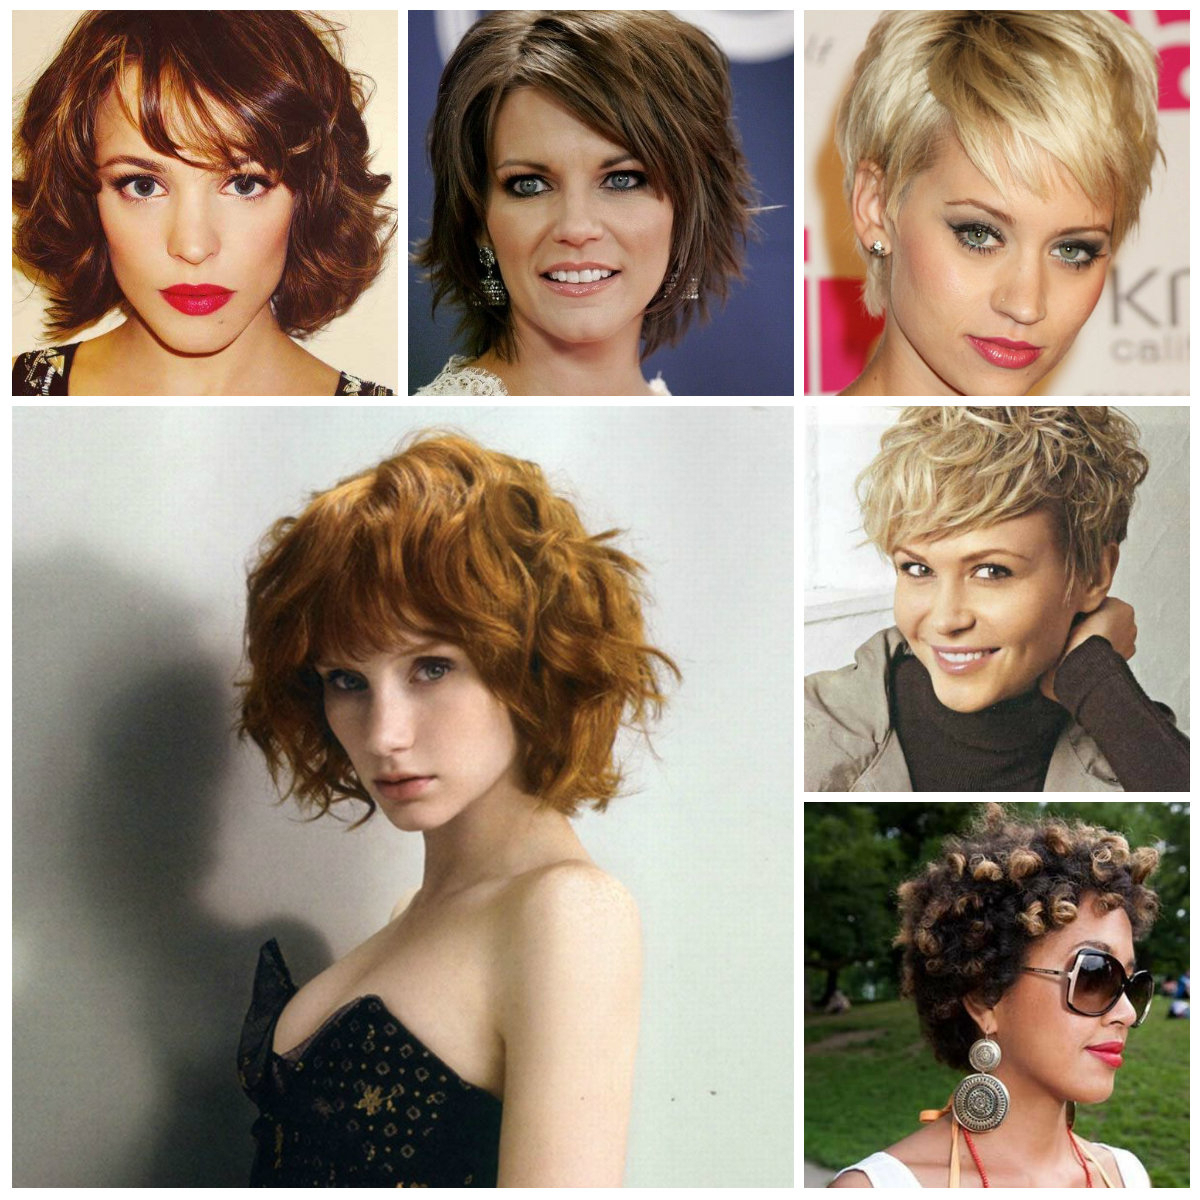 Short Hairstyles | Hairstyles For Women 2019, Haircuts For Long With Regard To Short Haircuts For Voluminous Hair (View 14 of 25)